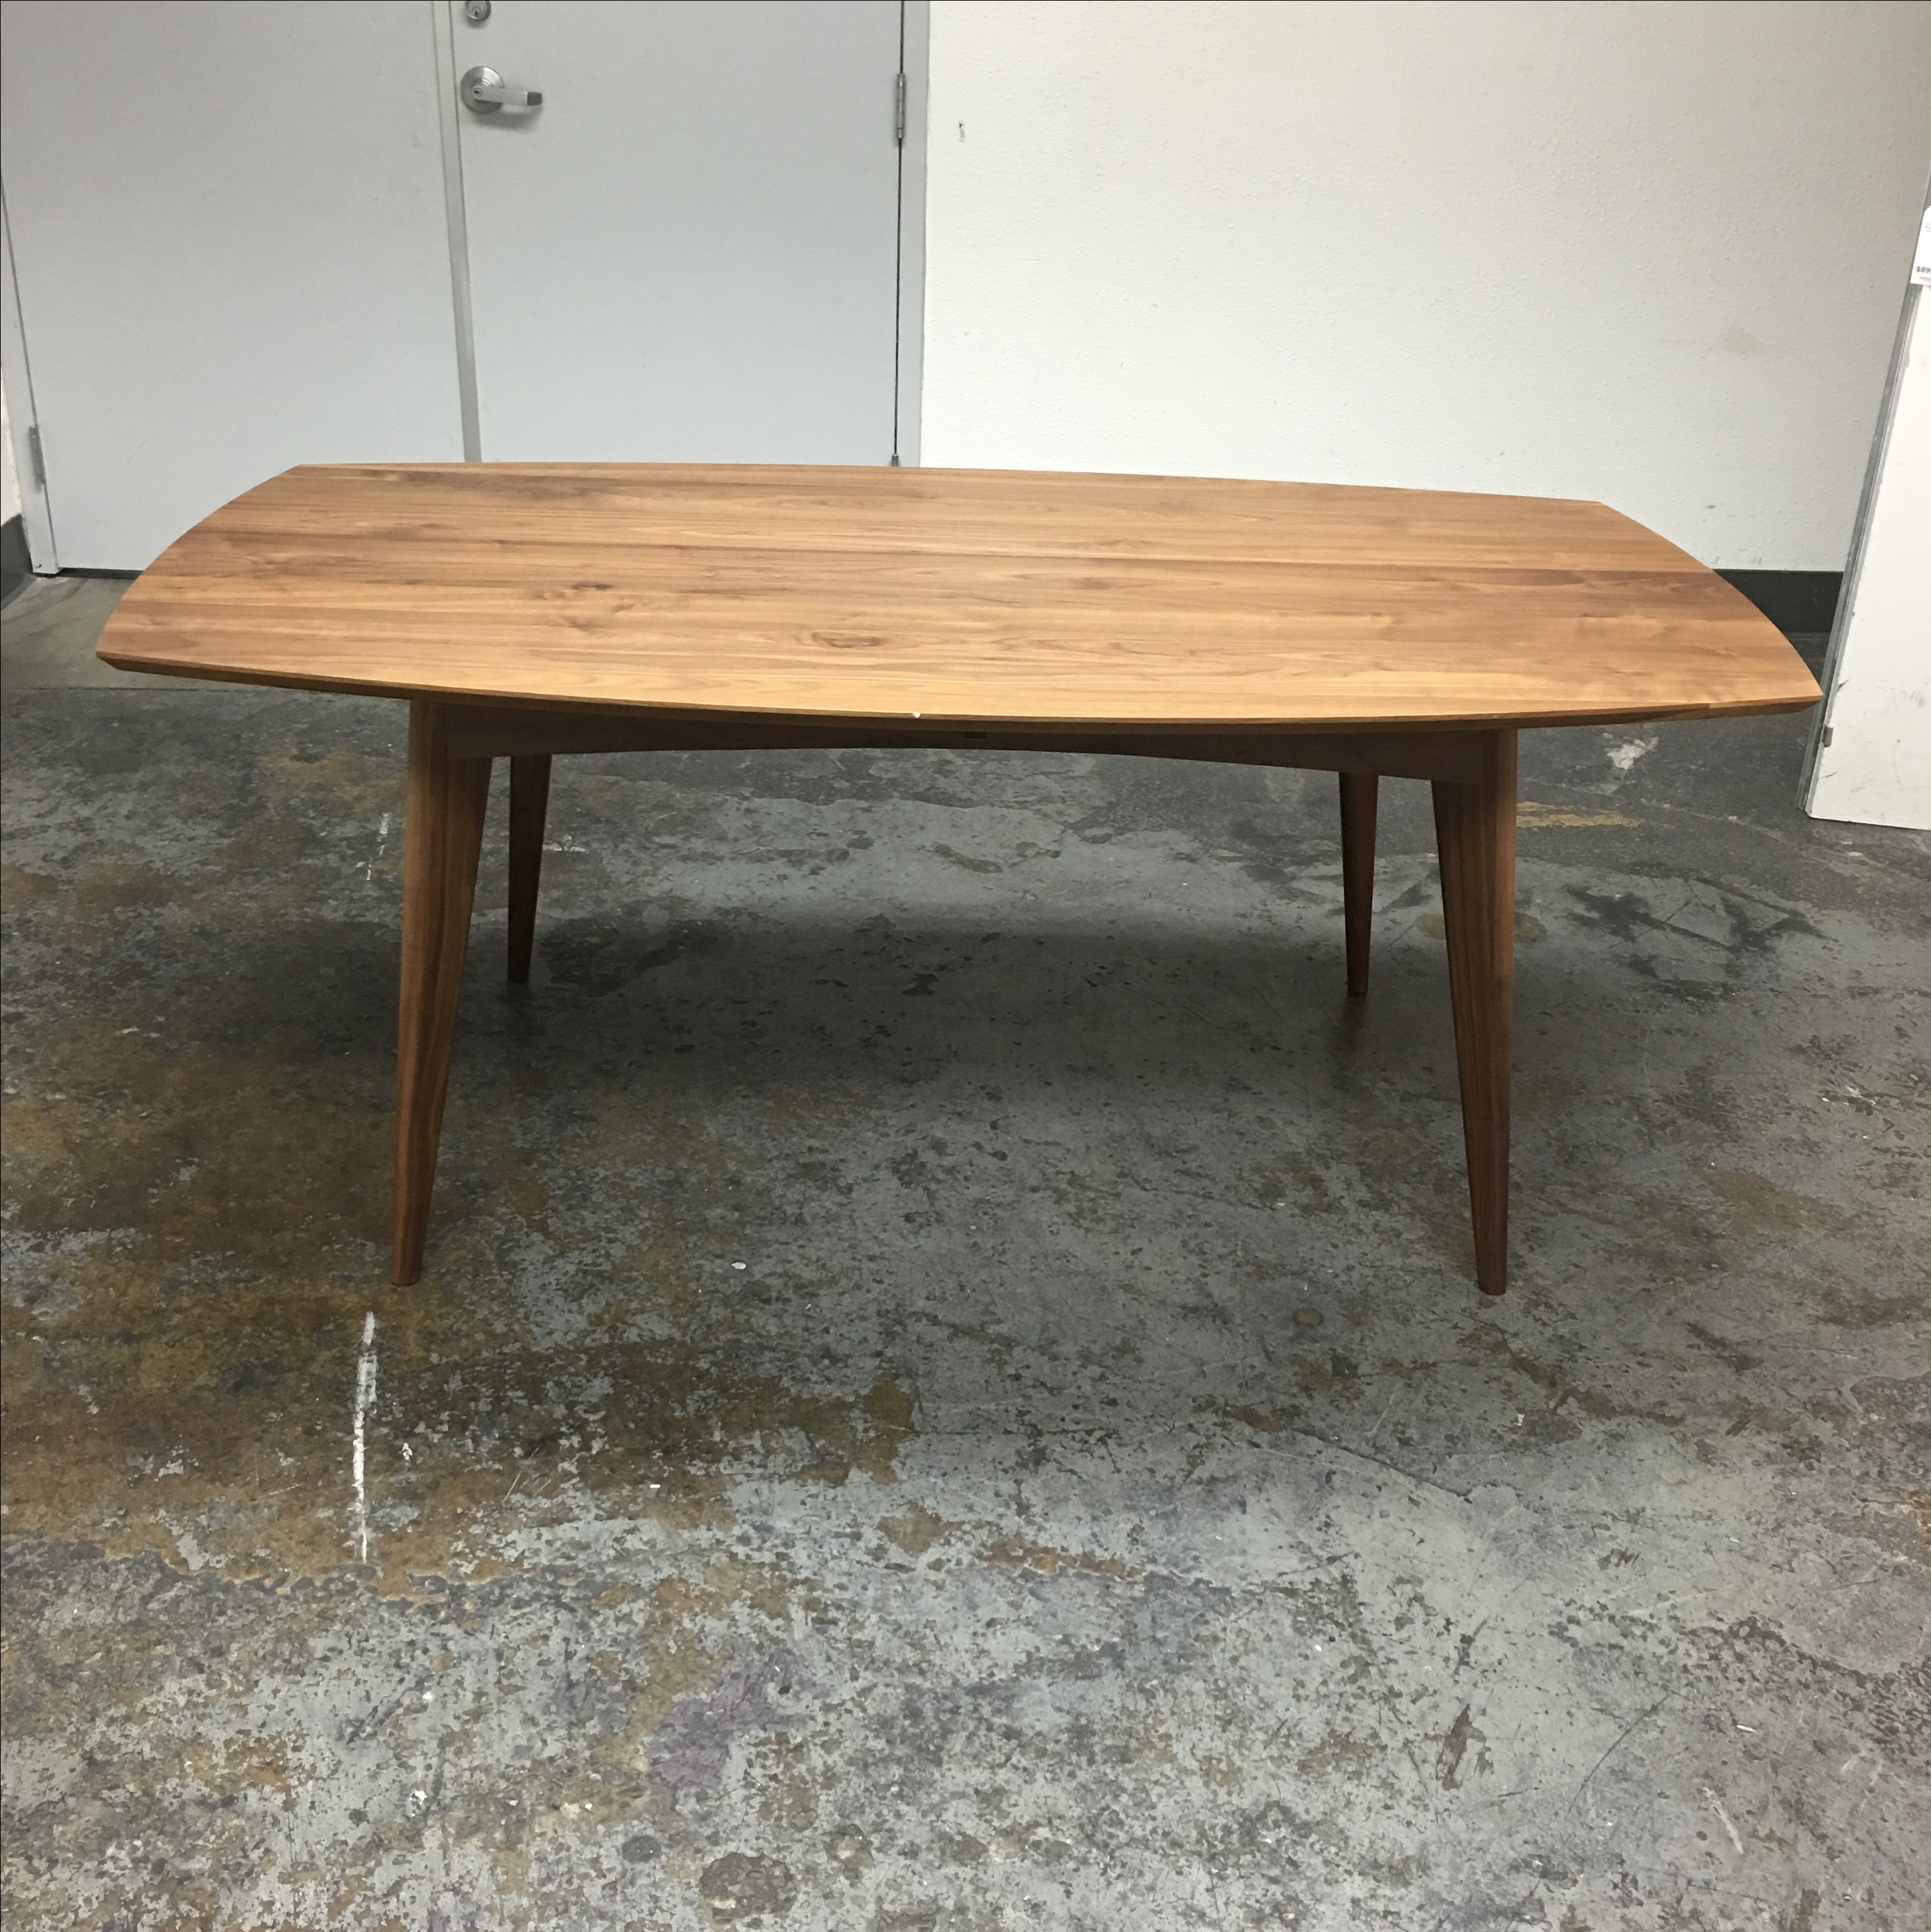 Merveilleux Design Plus Consignment Gallery Has A Beautiful Ventura Table From Room U0026  Board. The Table